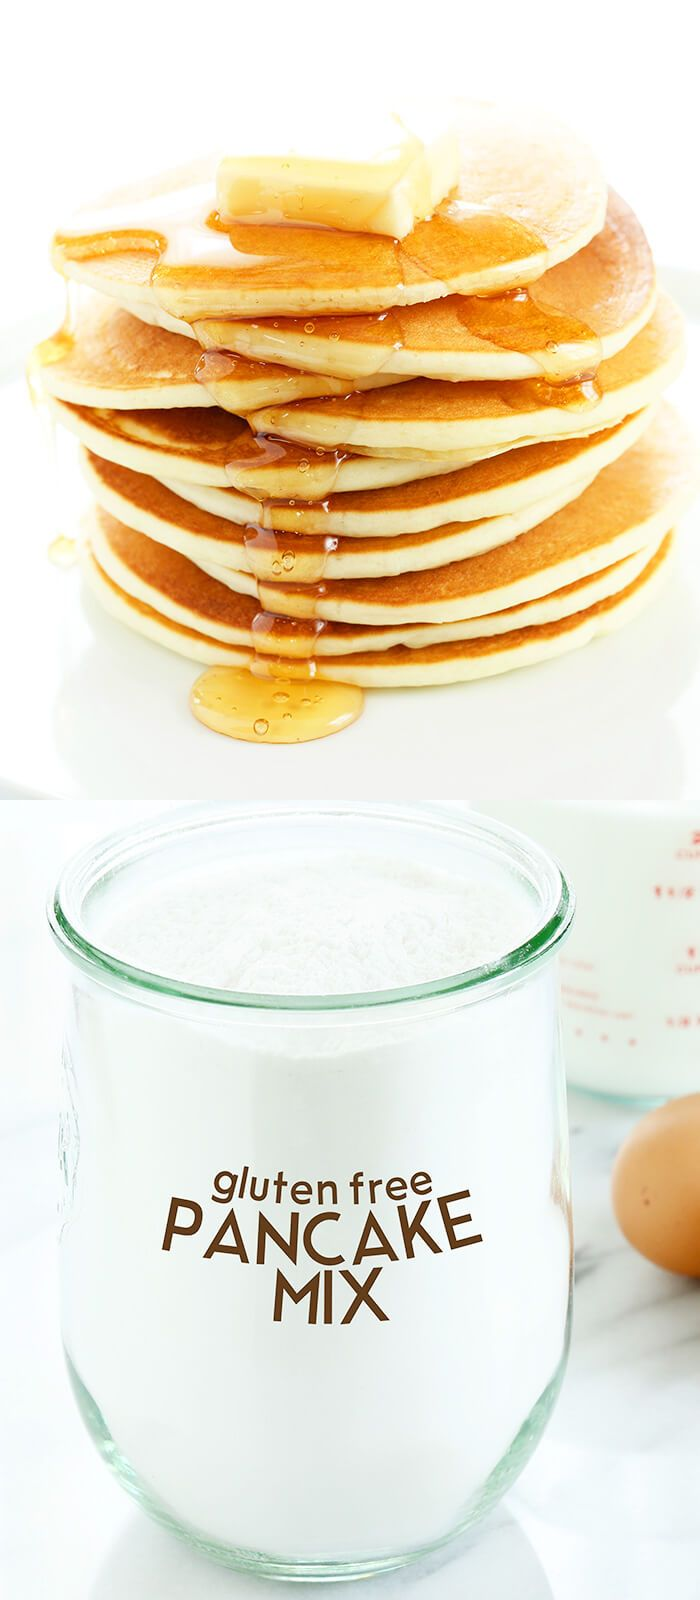 This easy mix for gluten free pancakes is perfect for everything from pancakes and muffins to breakfast bakes. Ditch that boxed mix and D.I.Y. better!